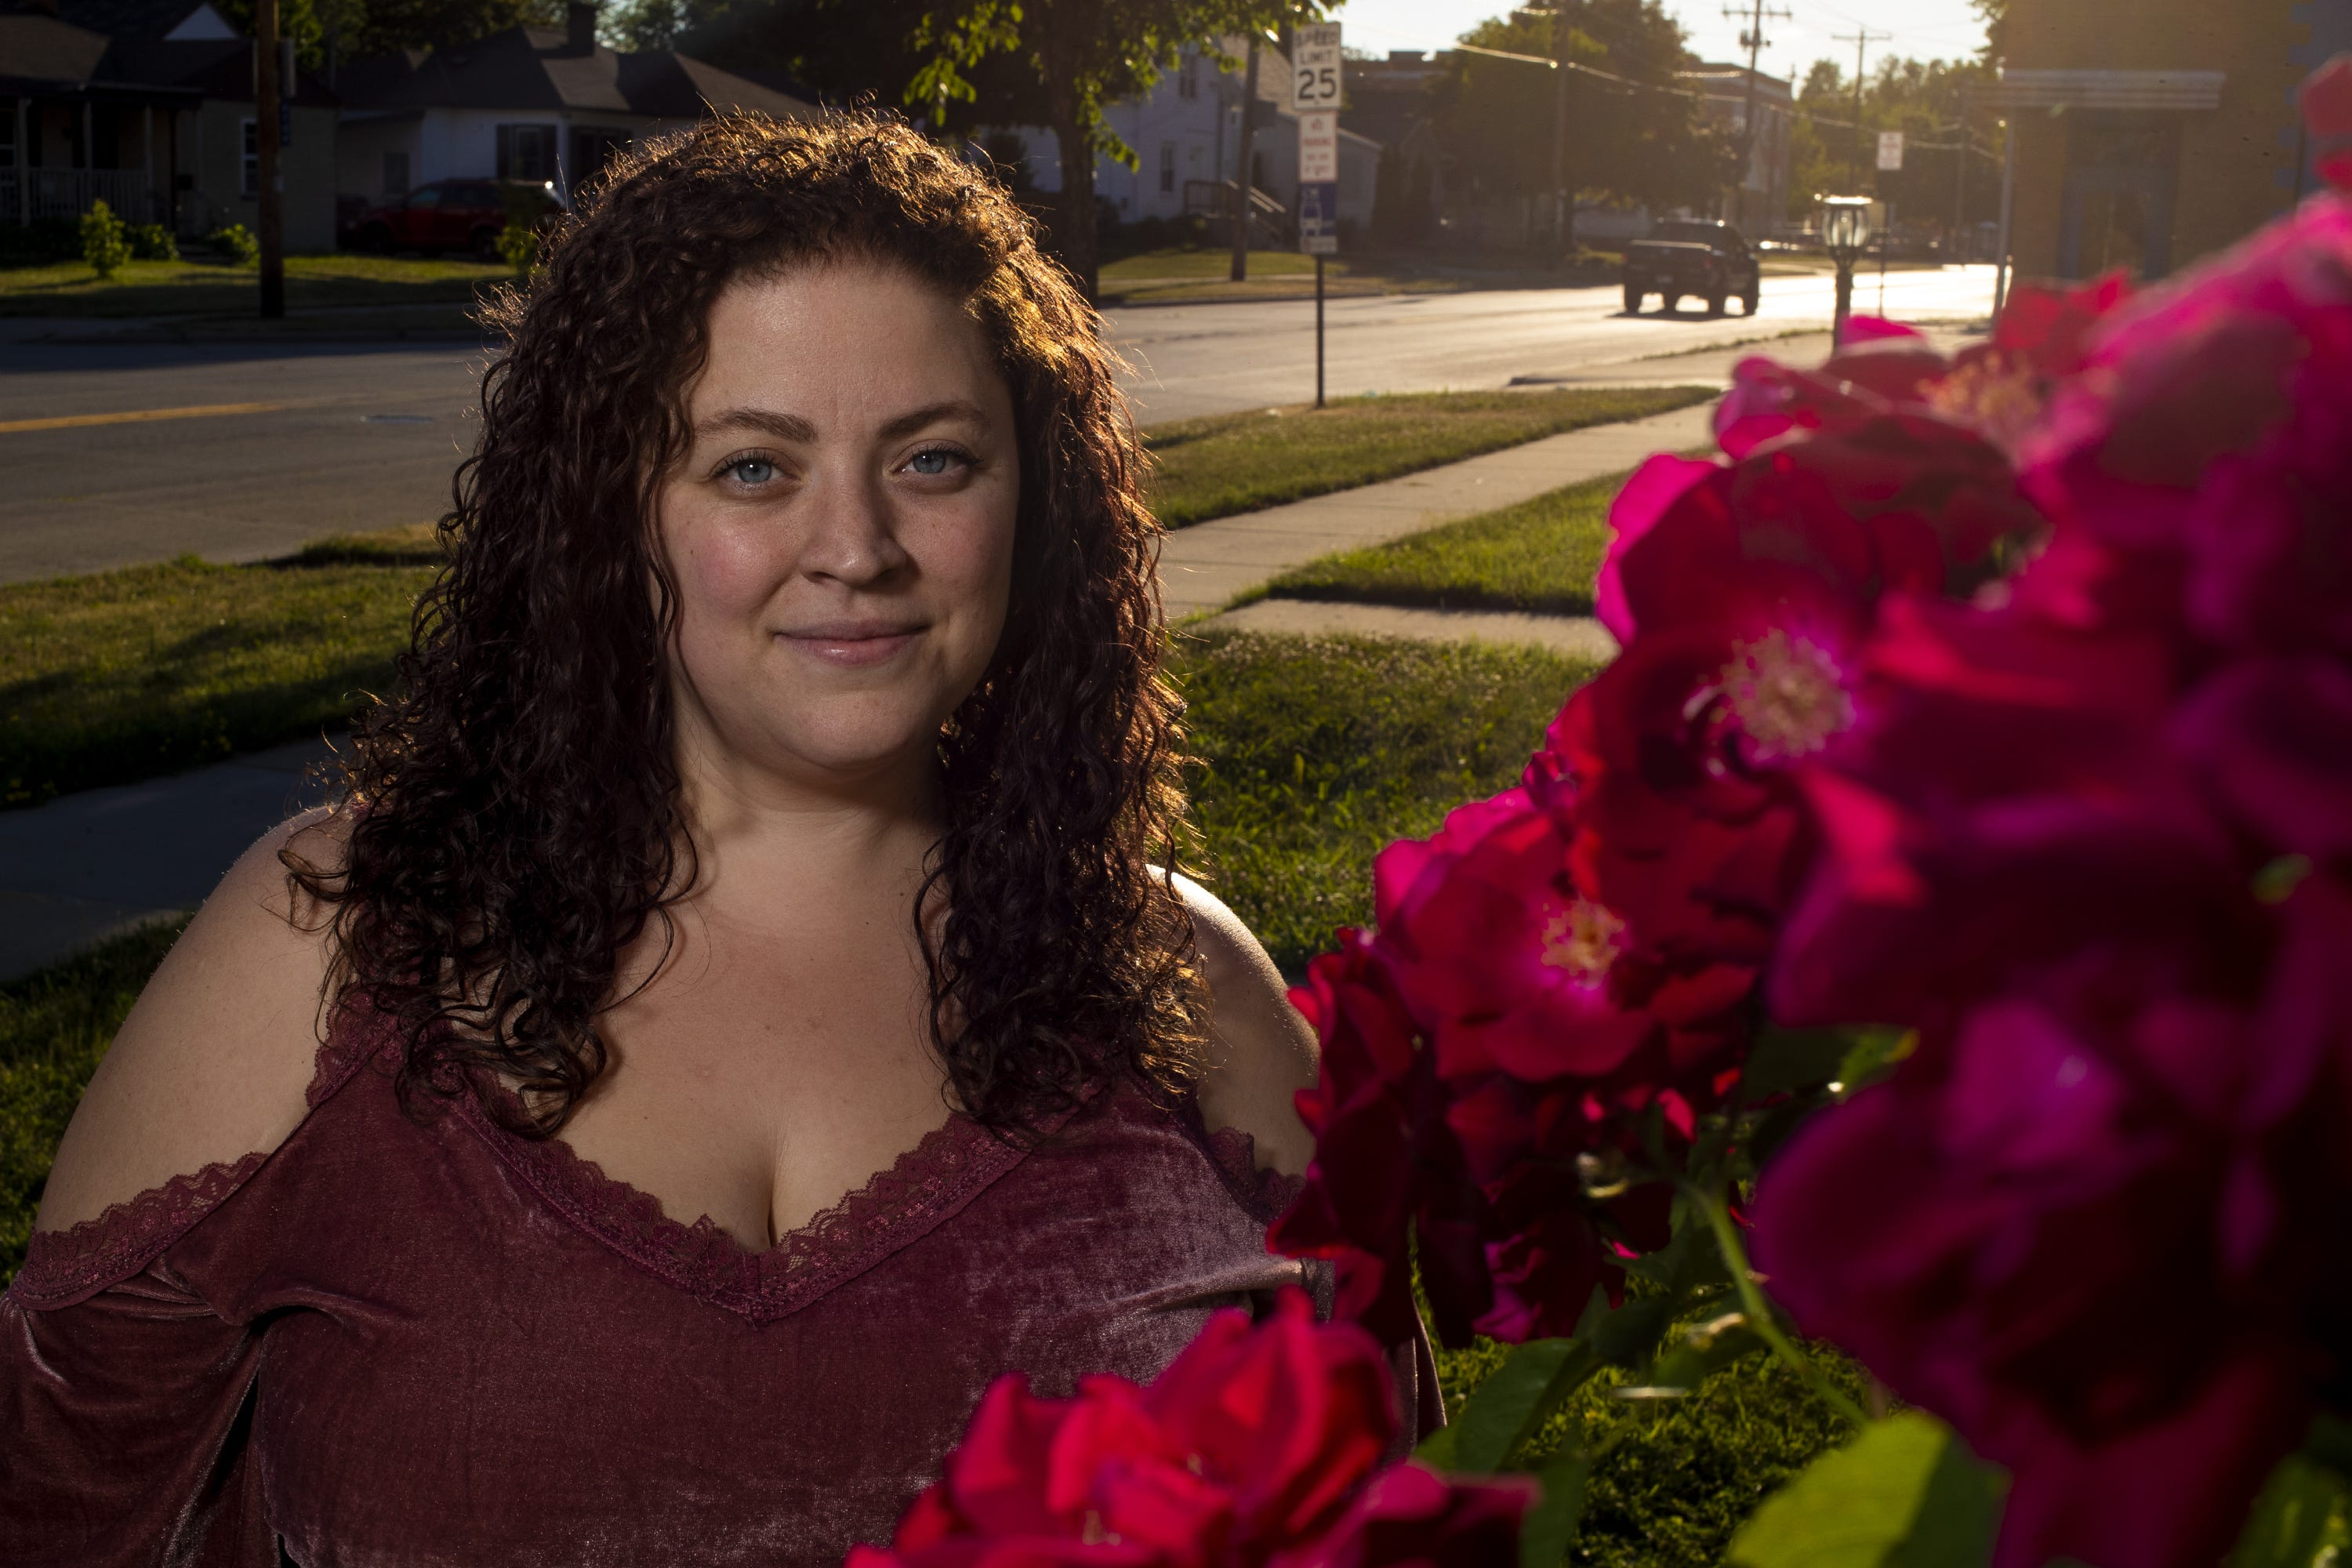 Jaleesa Gray, 28, poses for a portrait outside her home June 15, 2021, Green Bay, Wis.